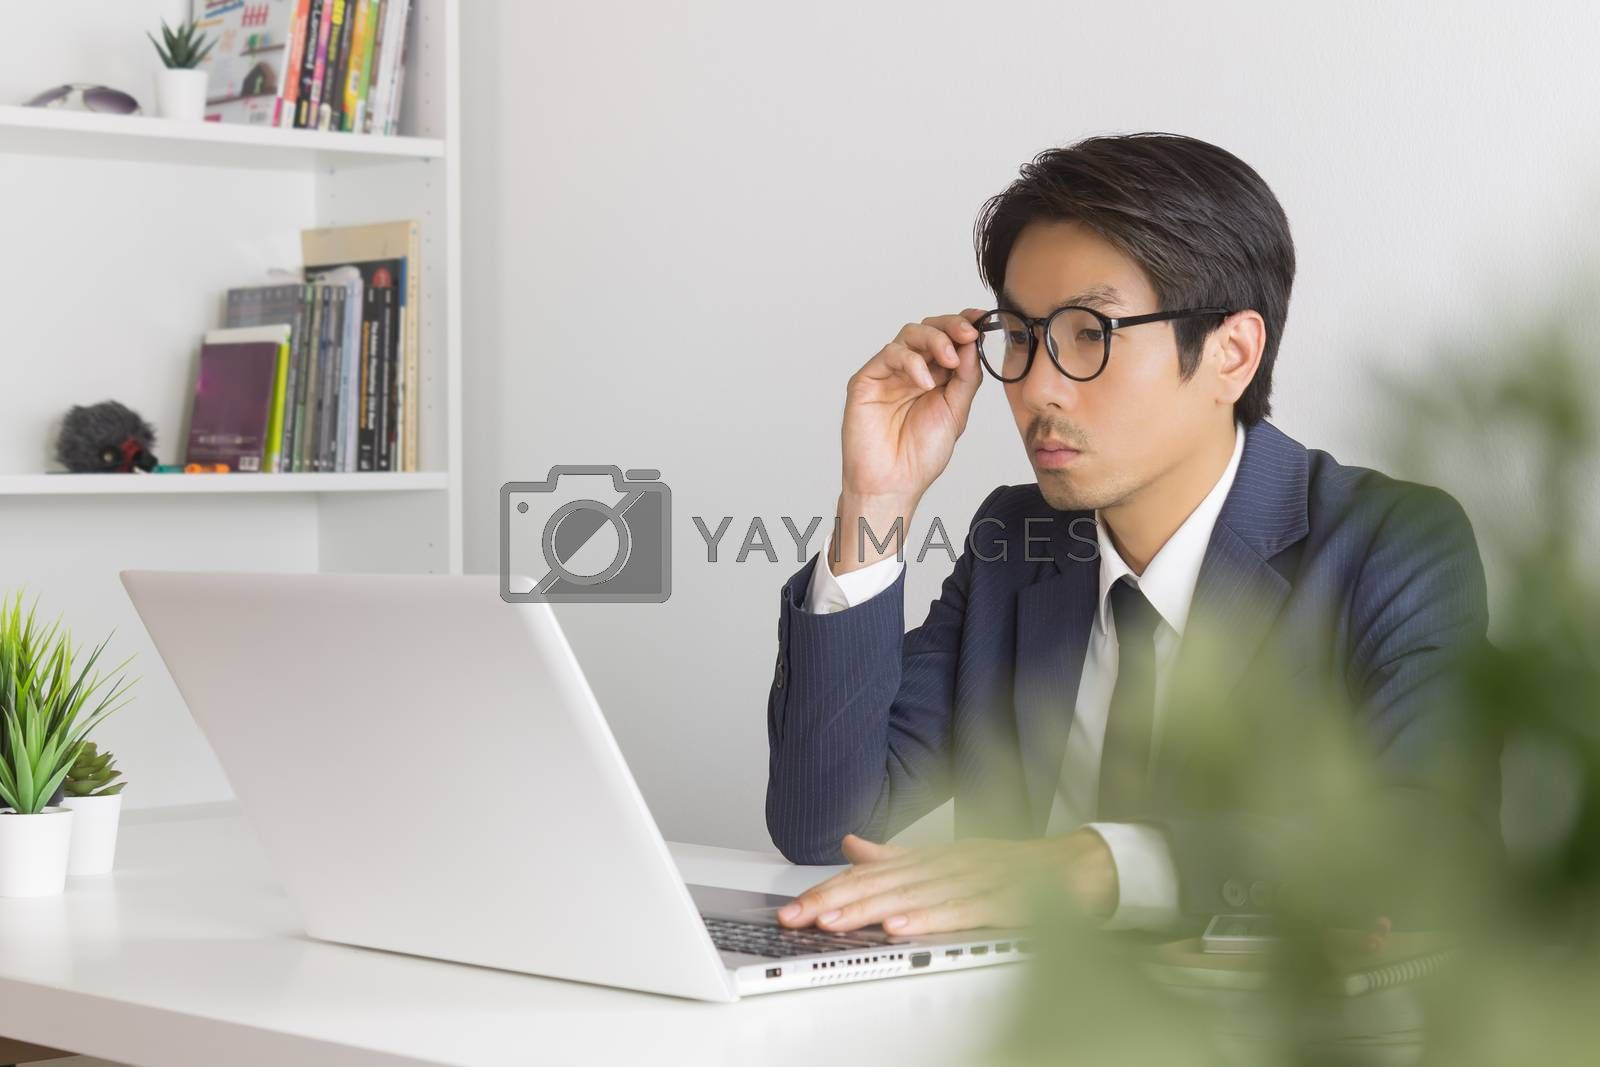 Asian Financial Advisor or Asian Consulting Businessman Seriously Calculate the Financial Data in front of Laptop. Asian financial advisor or Asian consulting businessman working in office